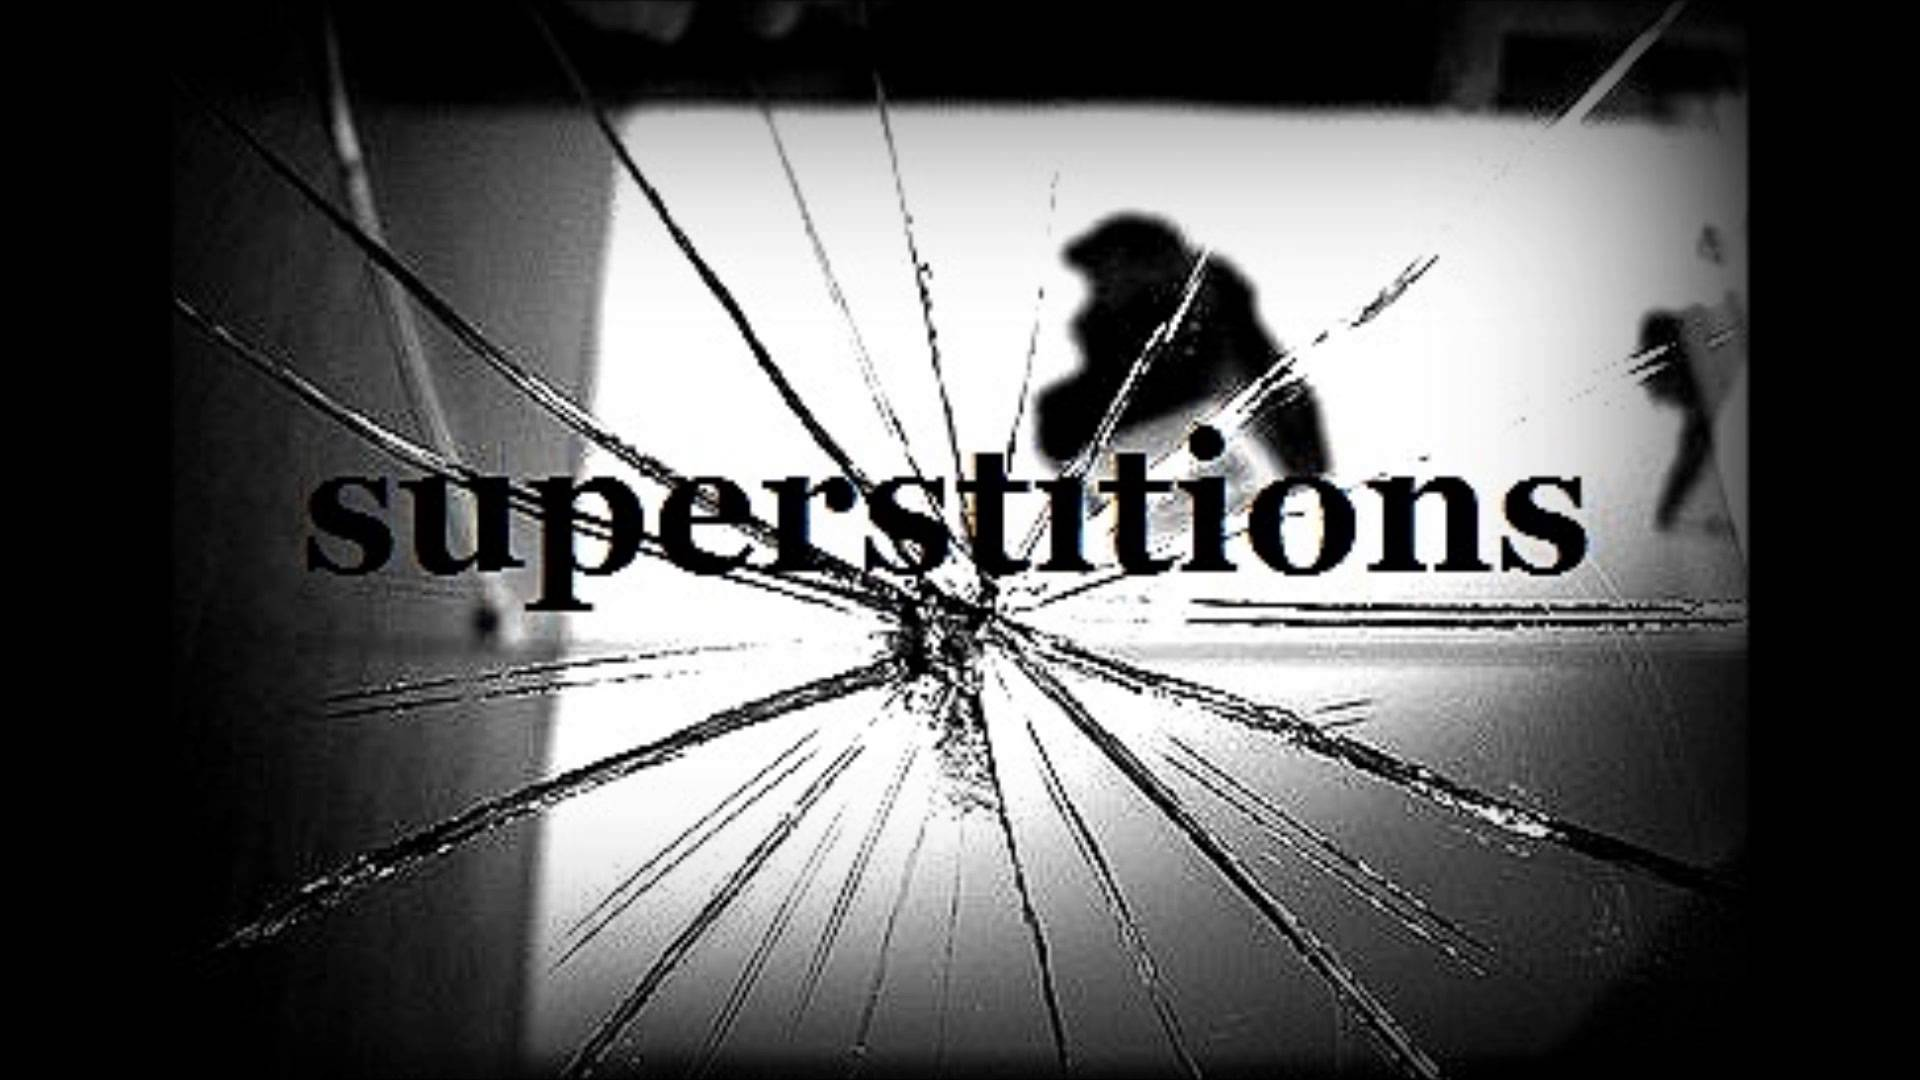 Annada Dash: Should We Believe In Superstitions?